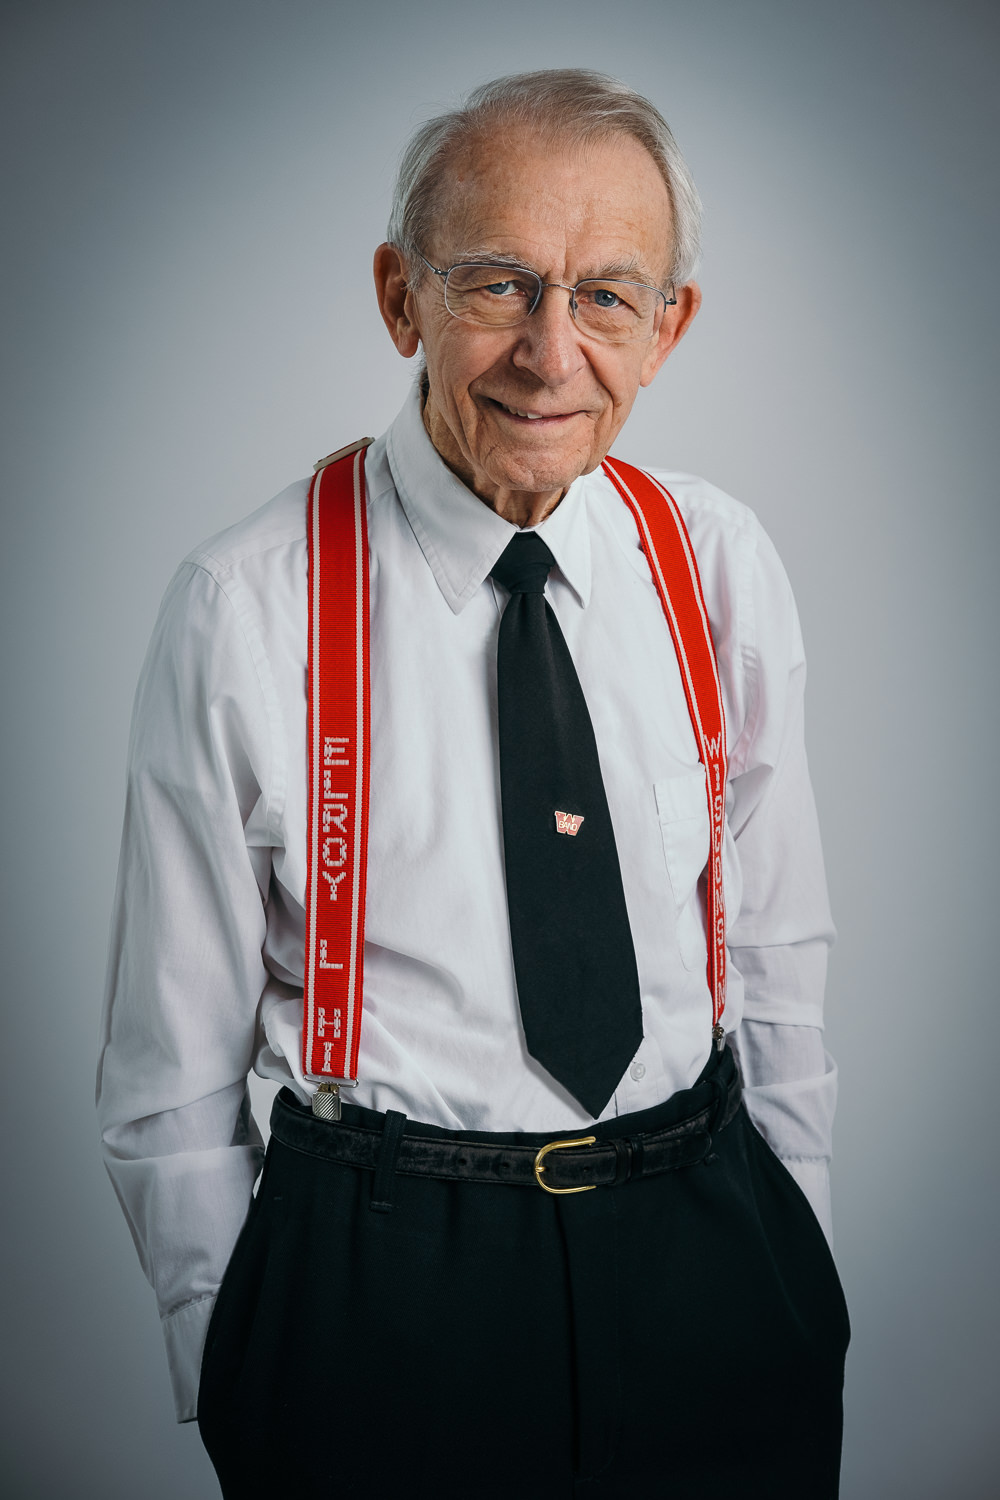 studio portrait of University of Wisconsin Madison marching band Director Mike Leckrone